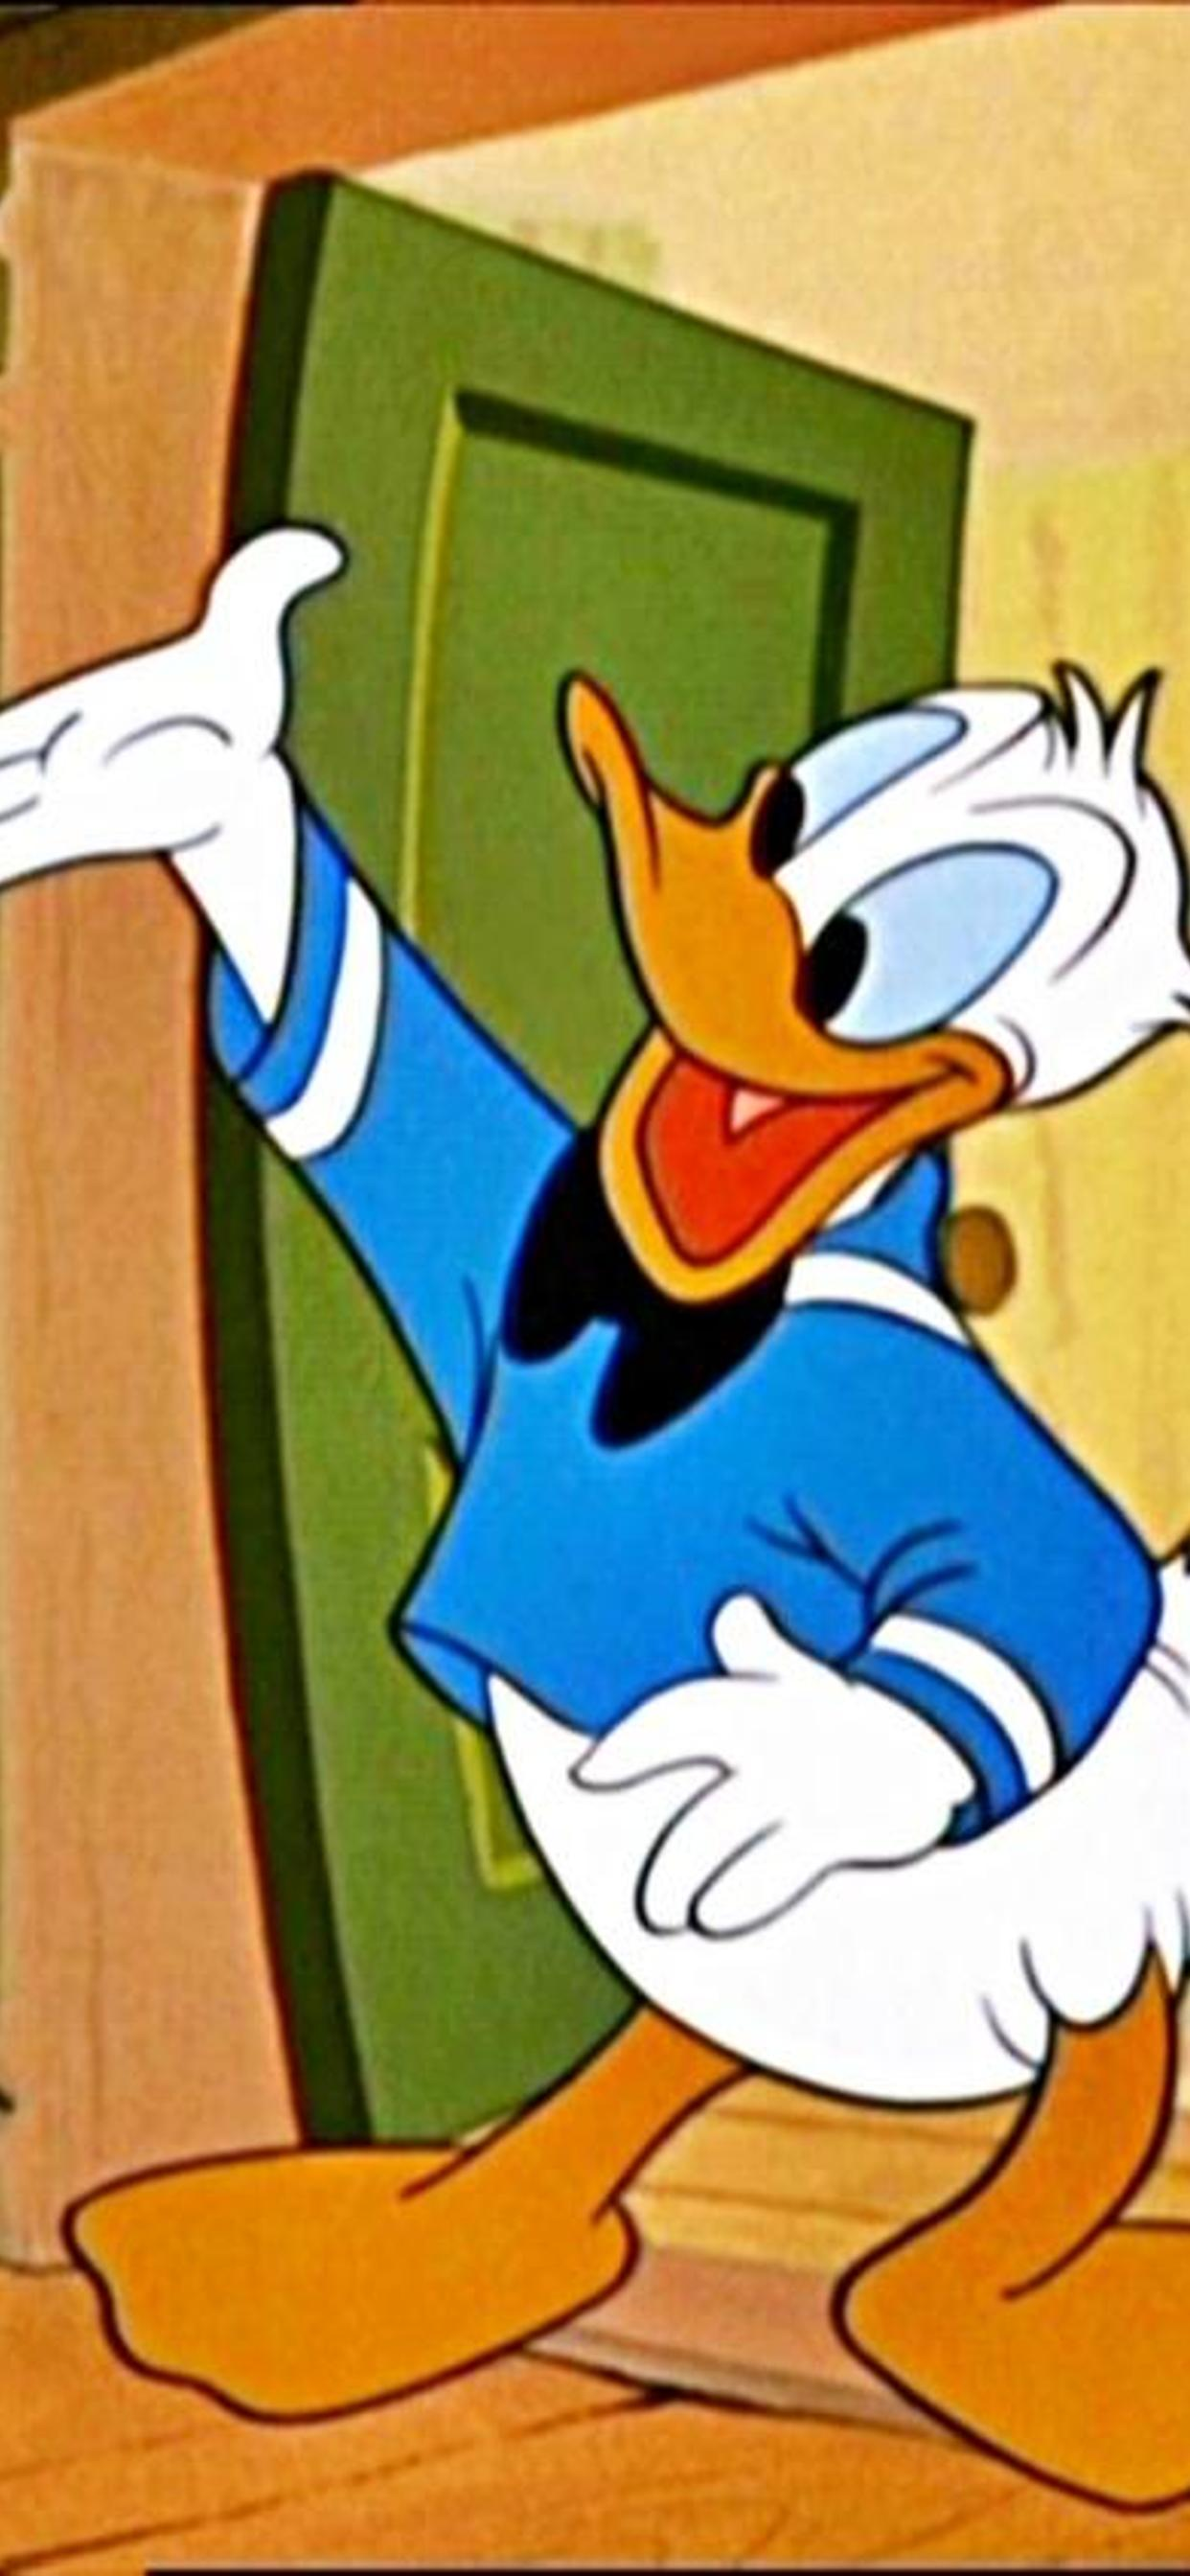 Donald Duck Happy At The Door Cartoon Wallpaper